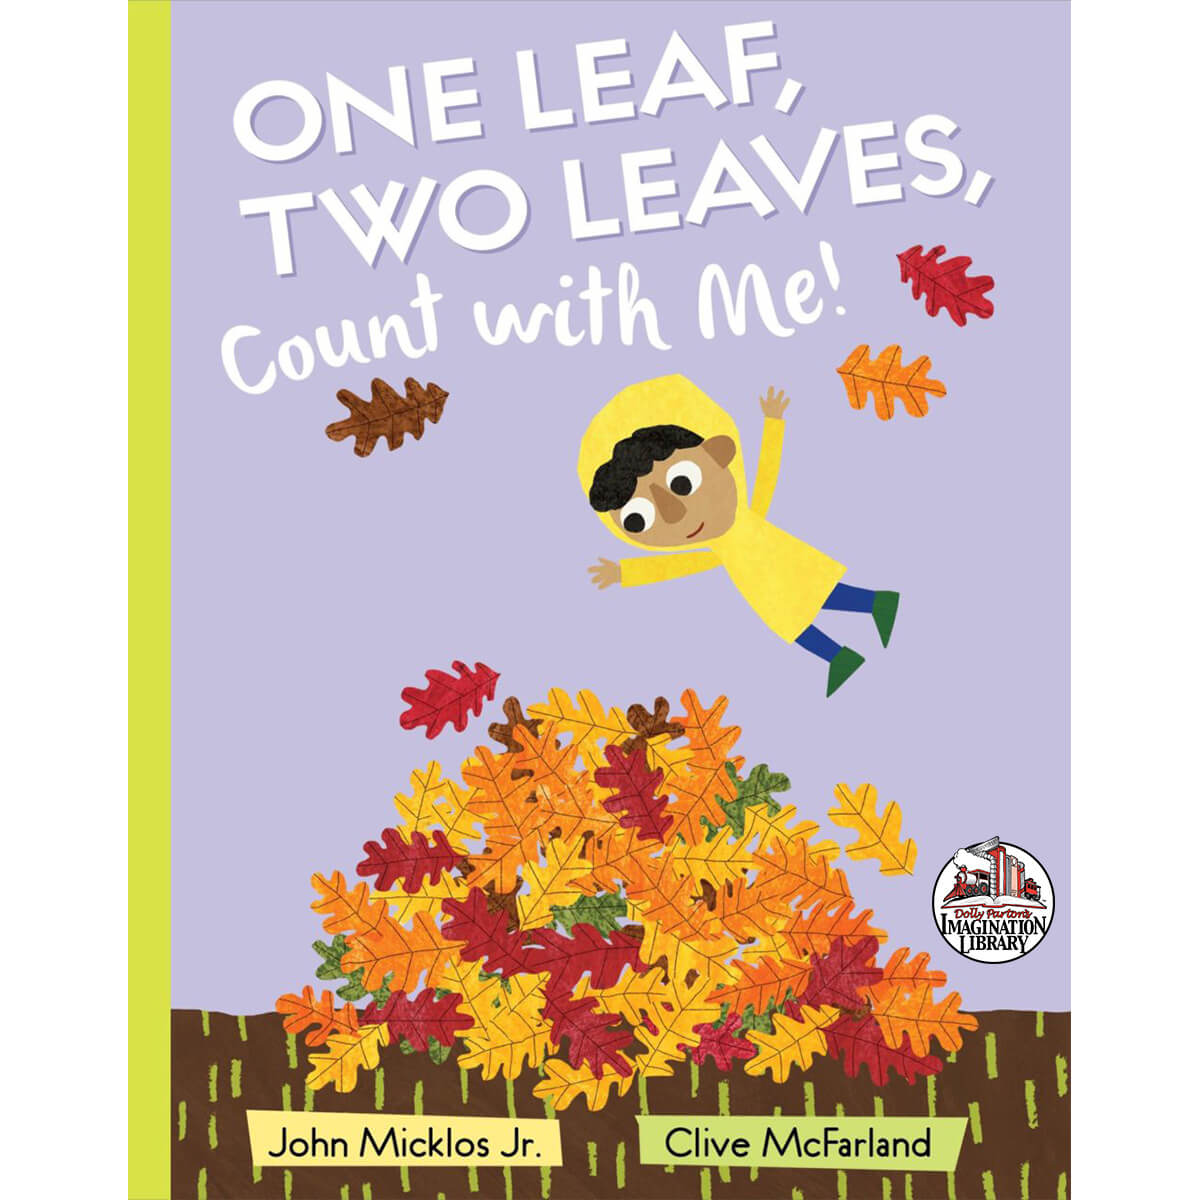 One Leaf Two Leaves